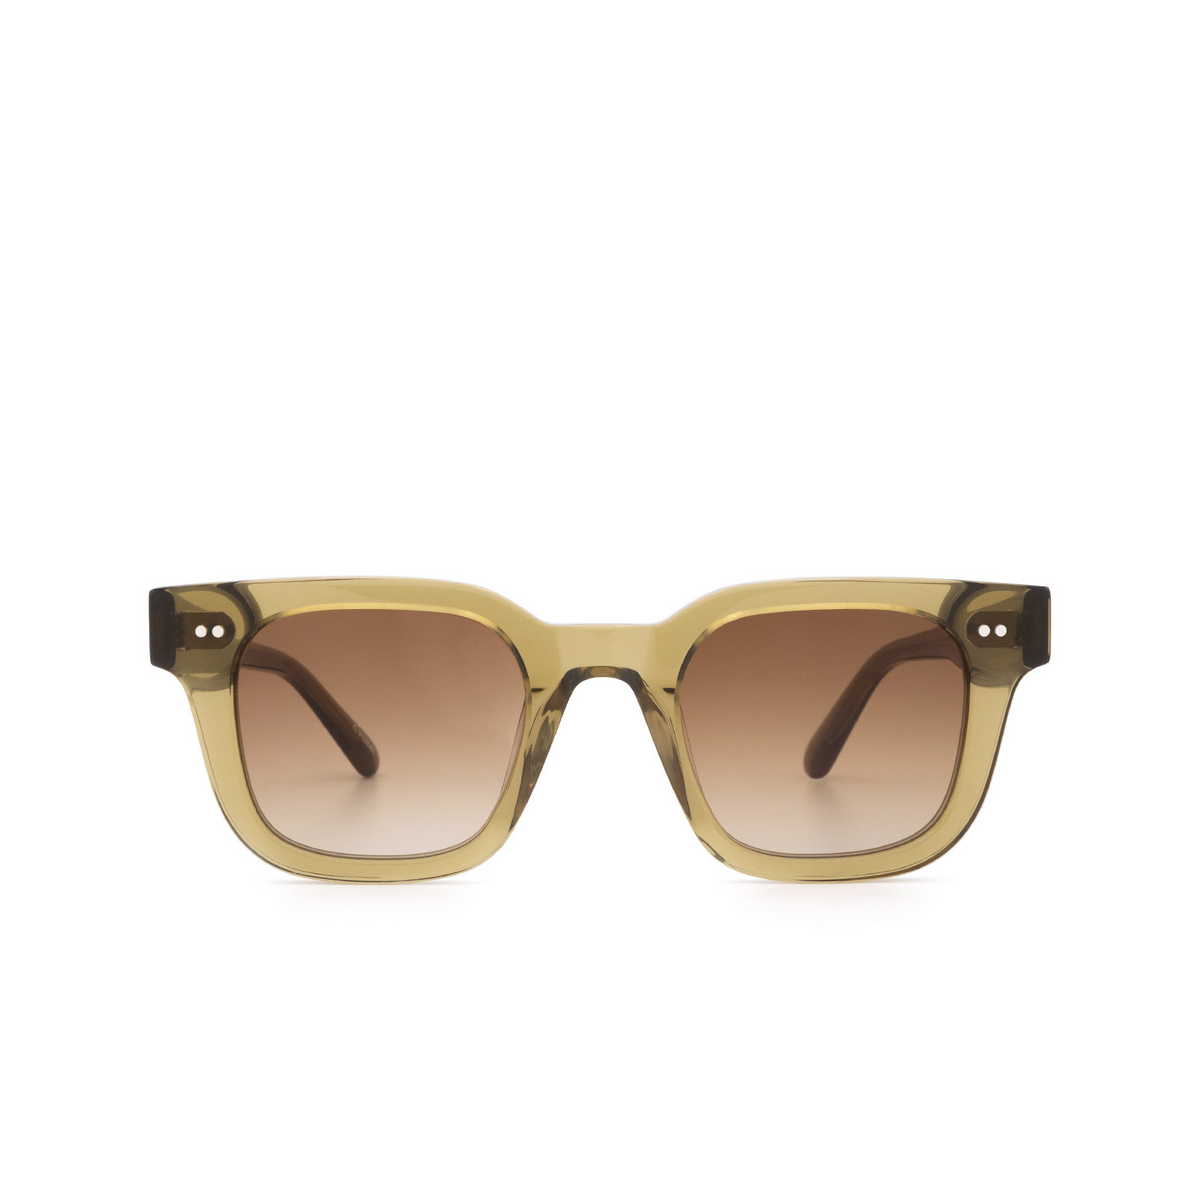 Chimi® Square Sunglasses: 04 color Green - front view.